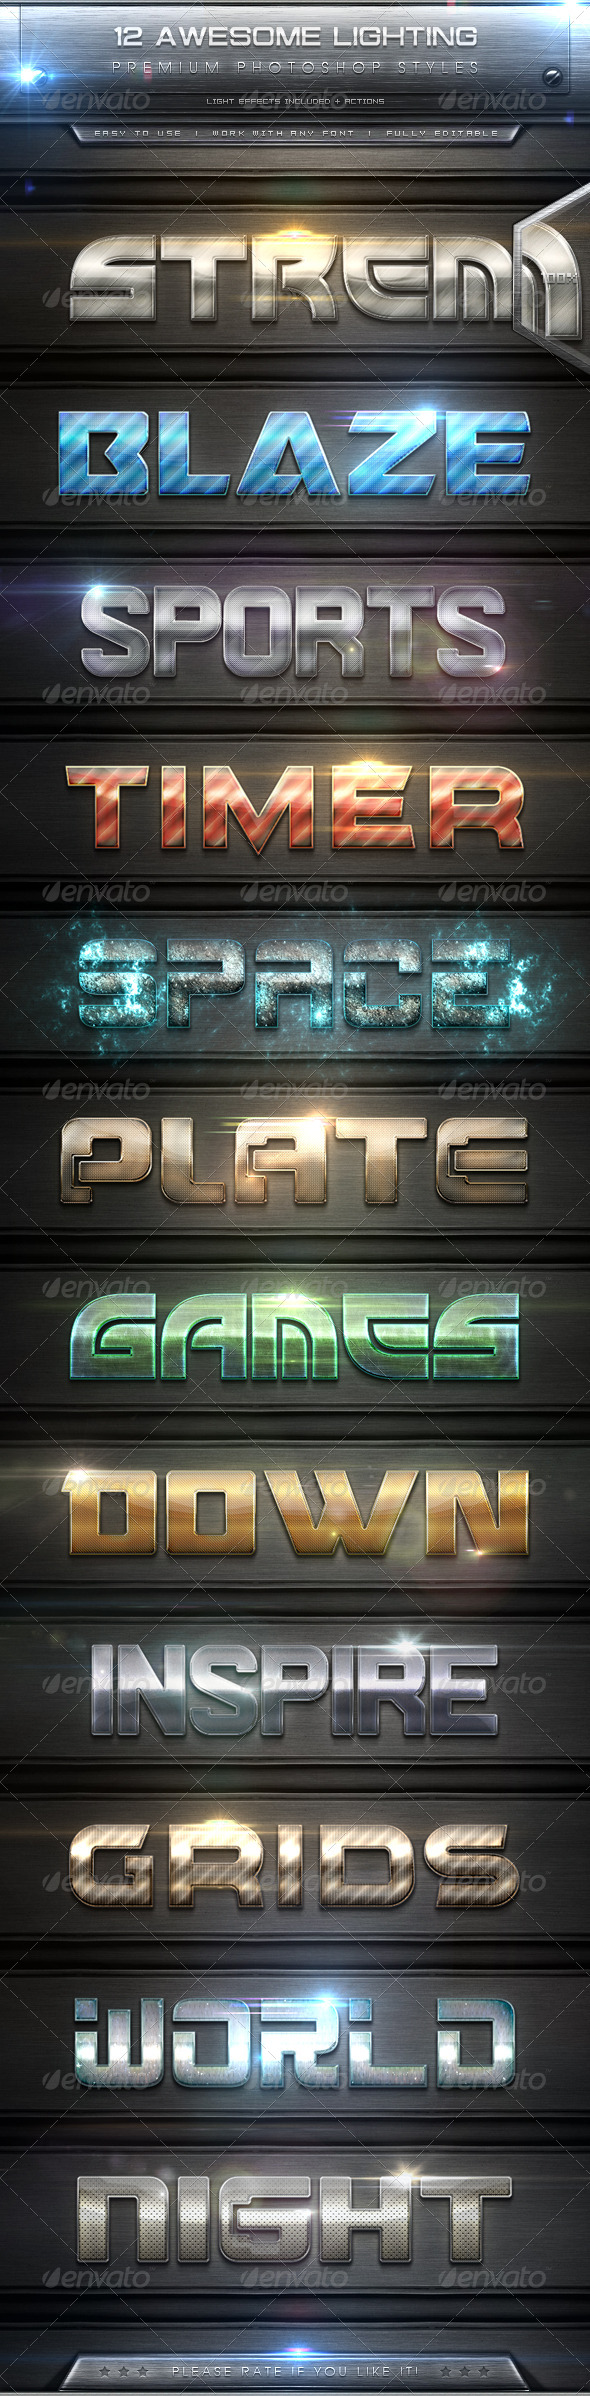 GraphicRiver 12 Awesome Lighting Text Effect Styles & Actions 7932807